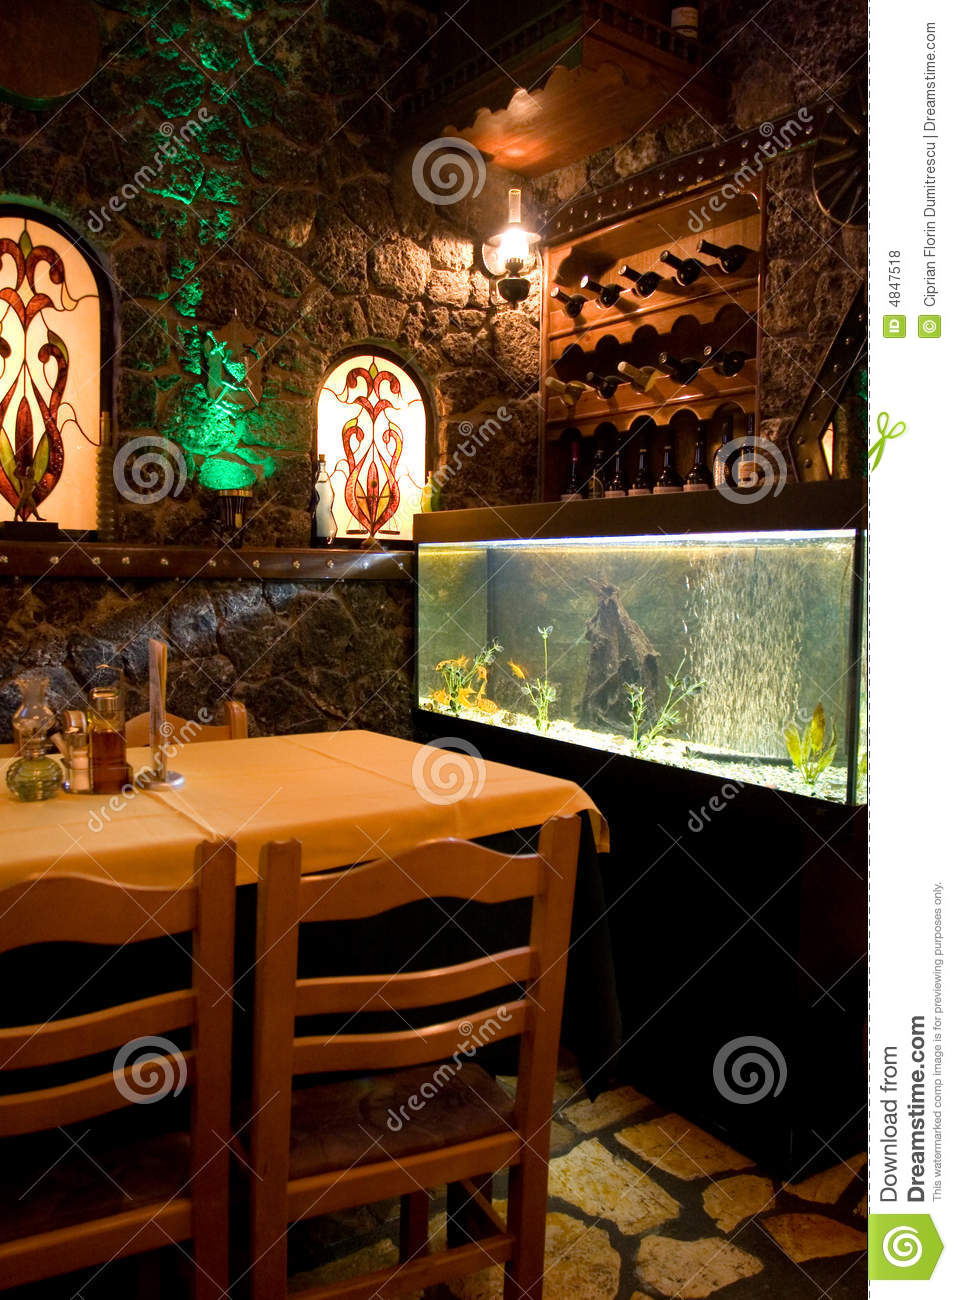 Greek restaurant royalty free stock photos image